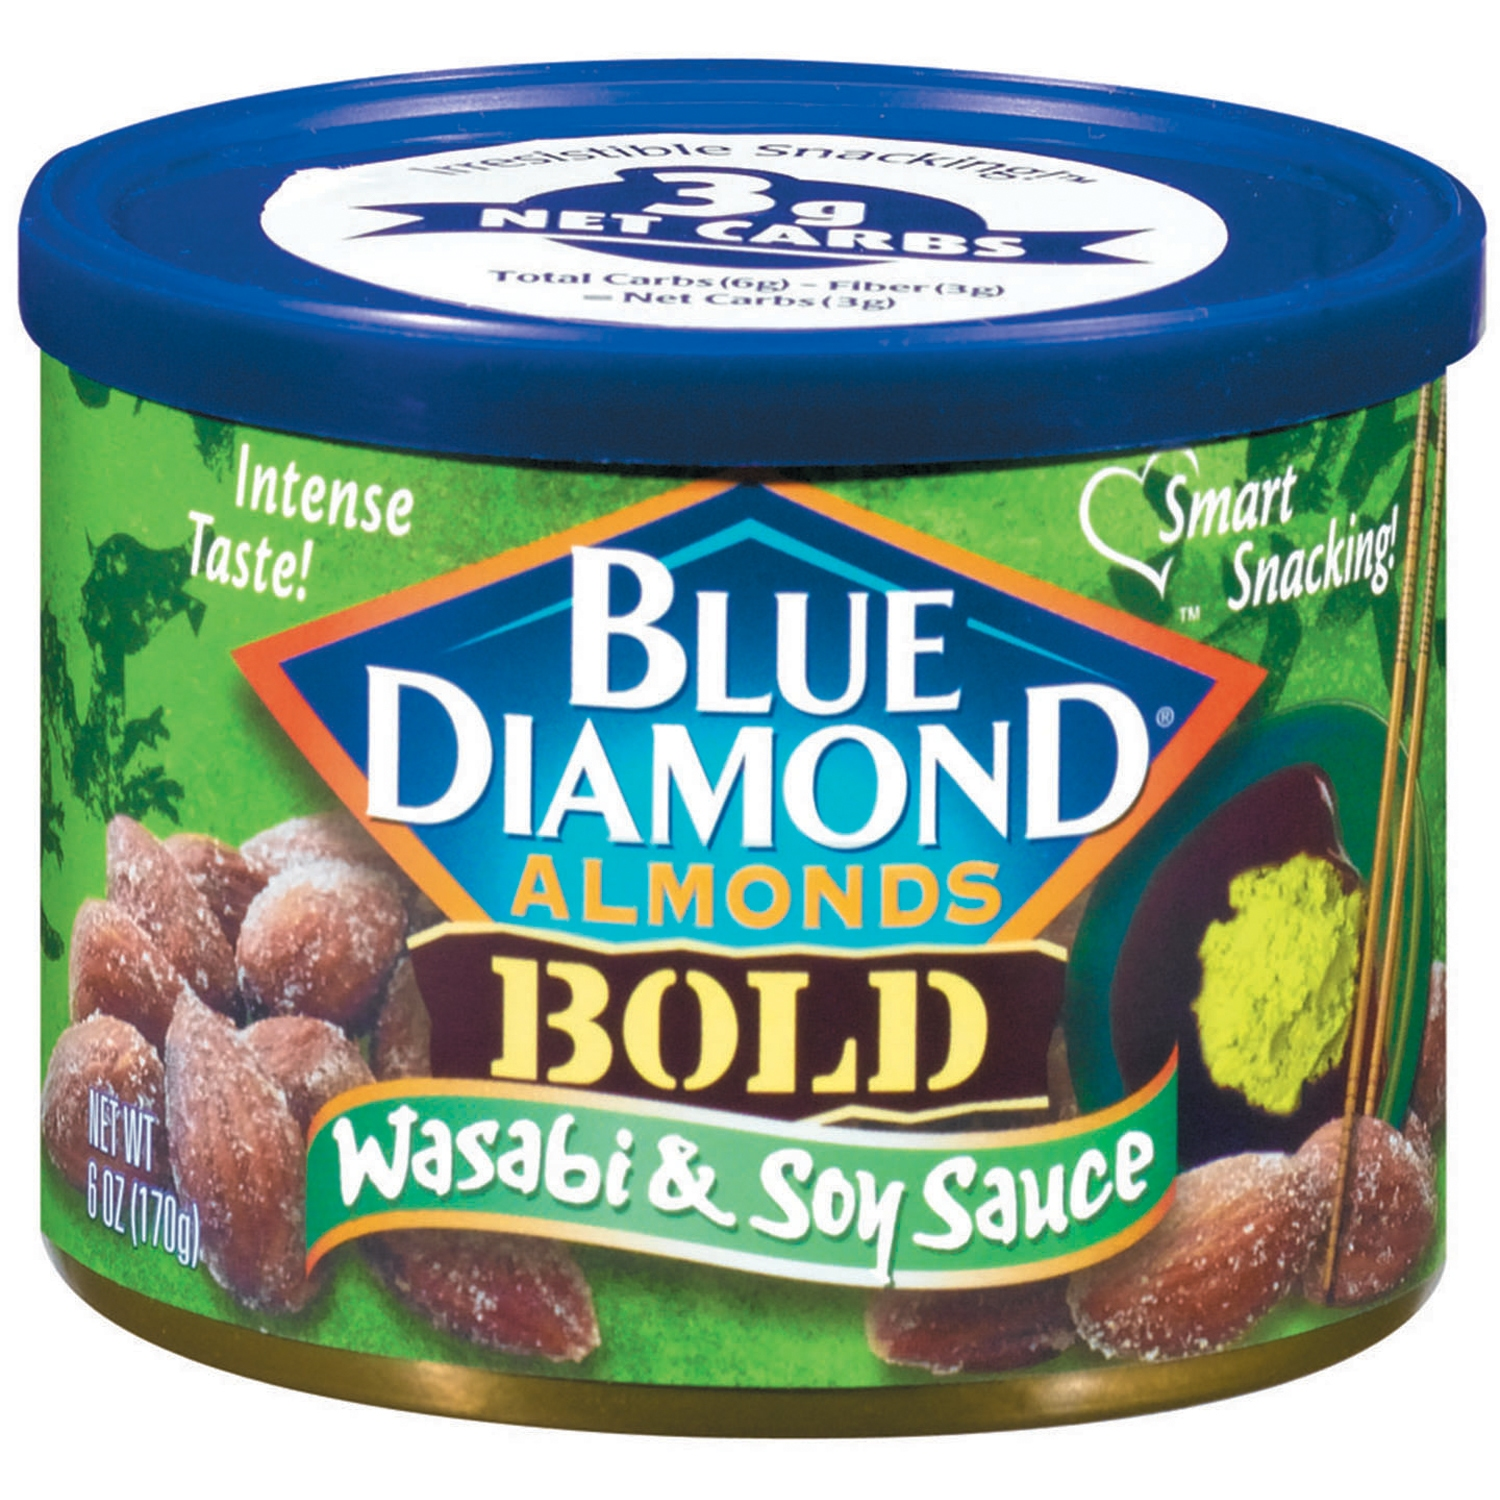 Blue Diamond Bold Wasabi & Soy Sauce Almonds, 6 oz - Walmart.com